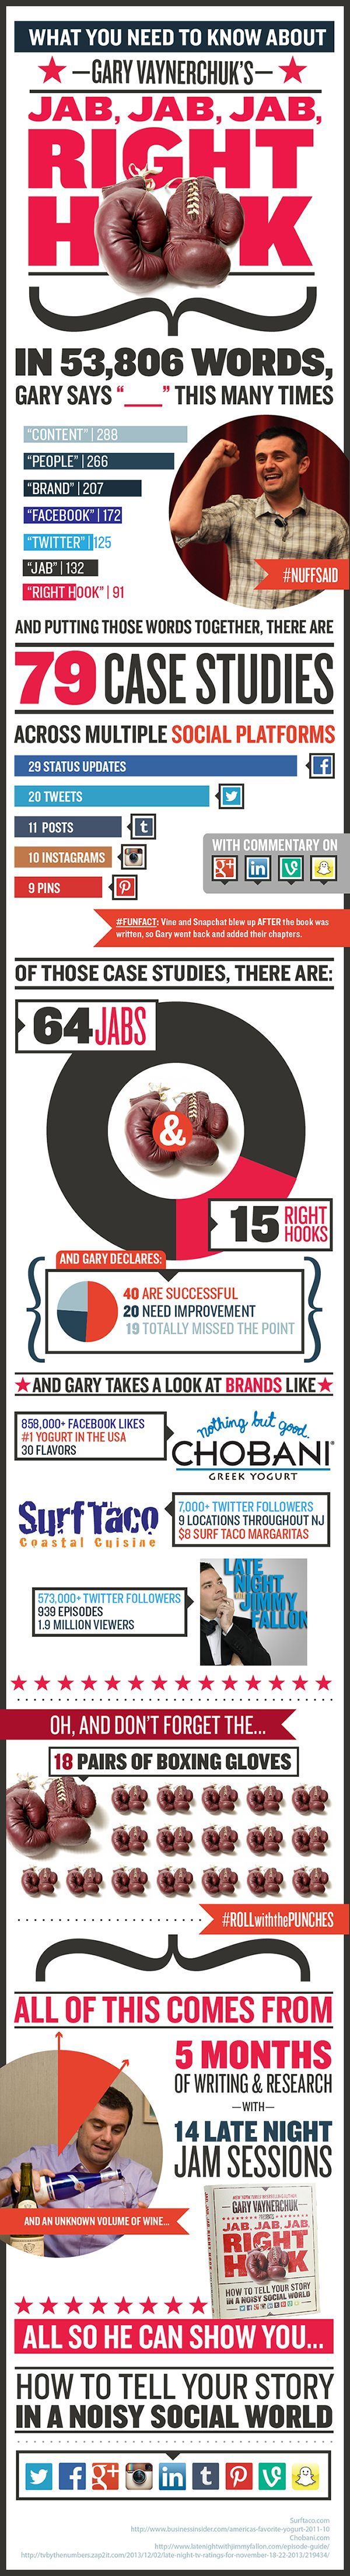 What You Need To Know About Jab Jab Jab Rigth Hook by Gary Vaynerchuk  http://www.garyvaynerchuk.com/jjjrhinfographic/